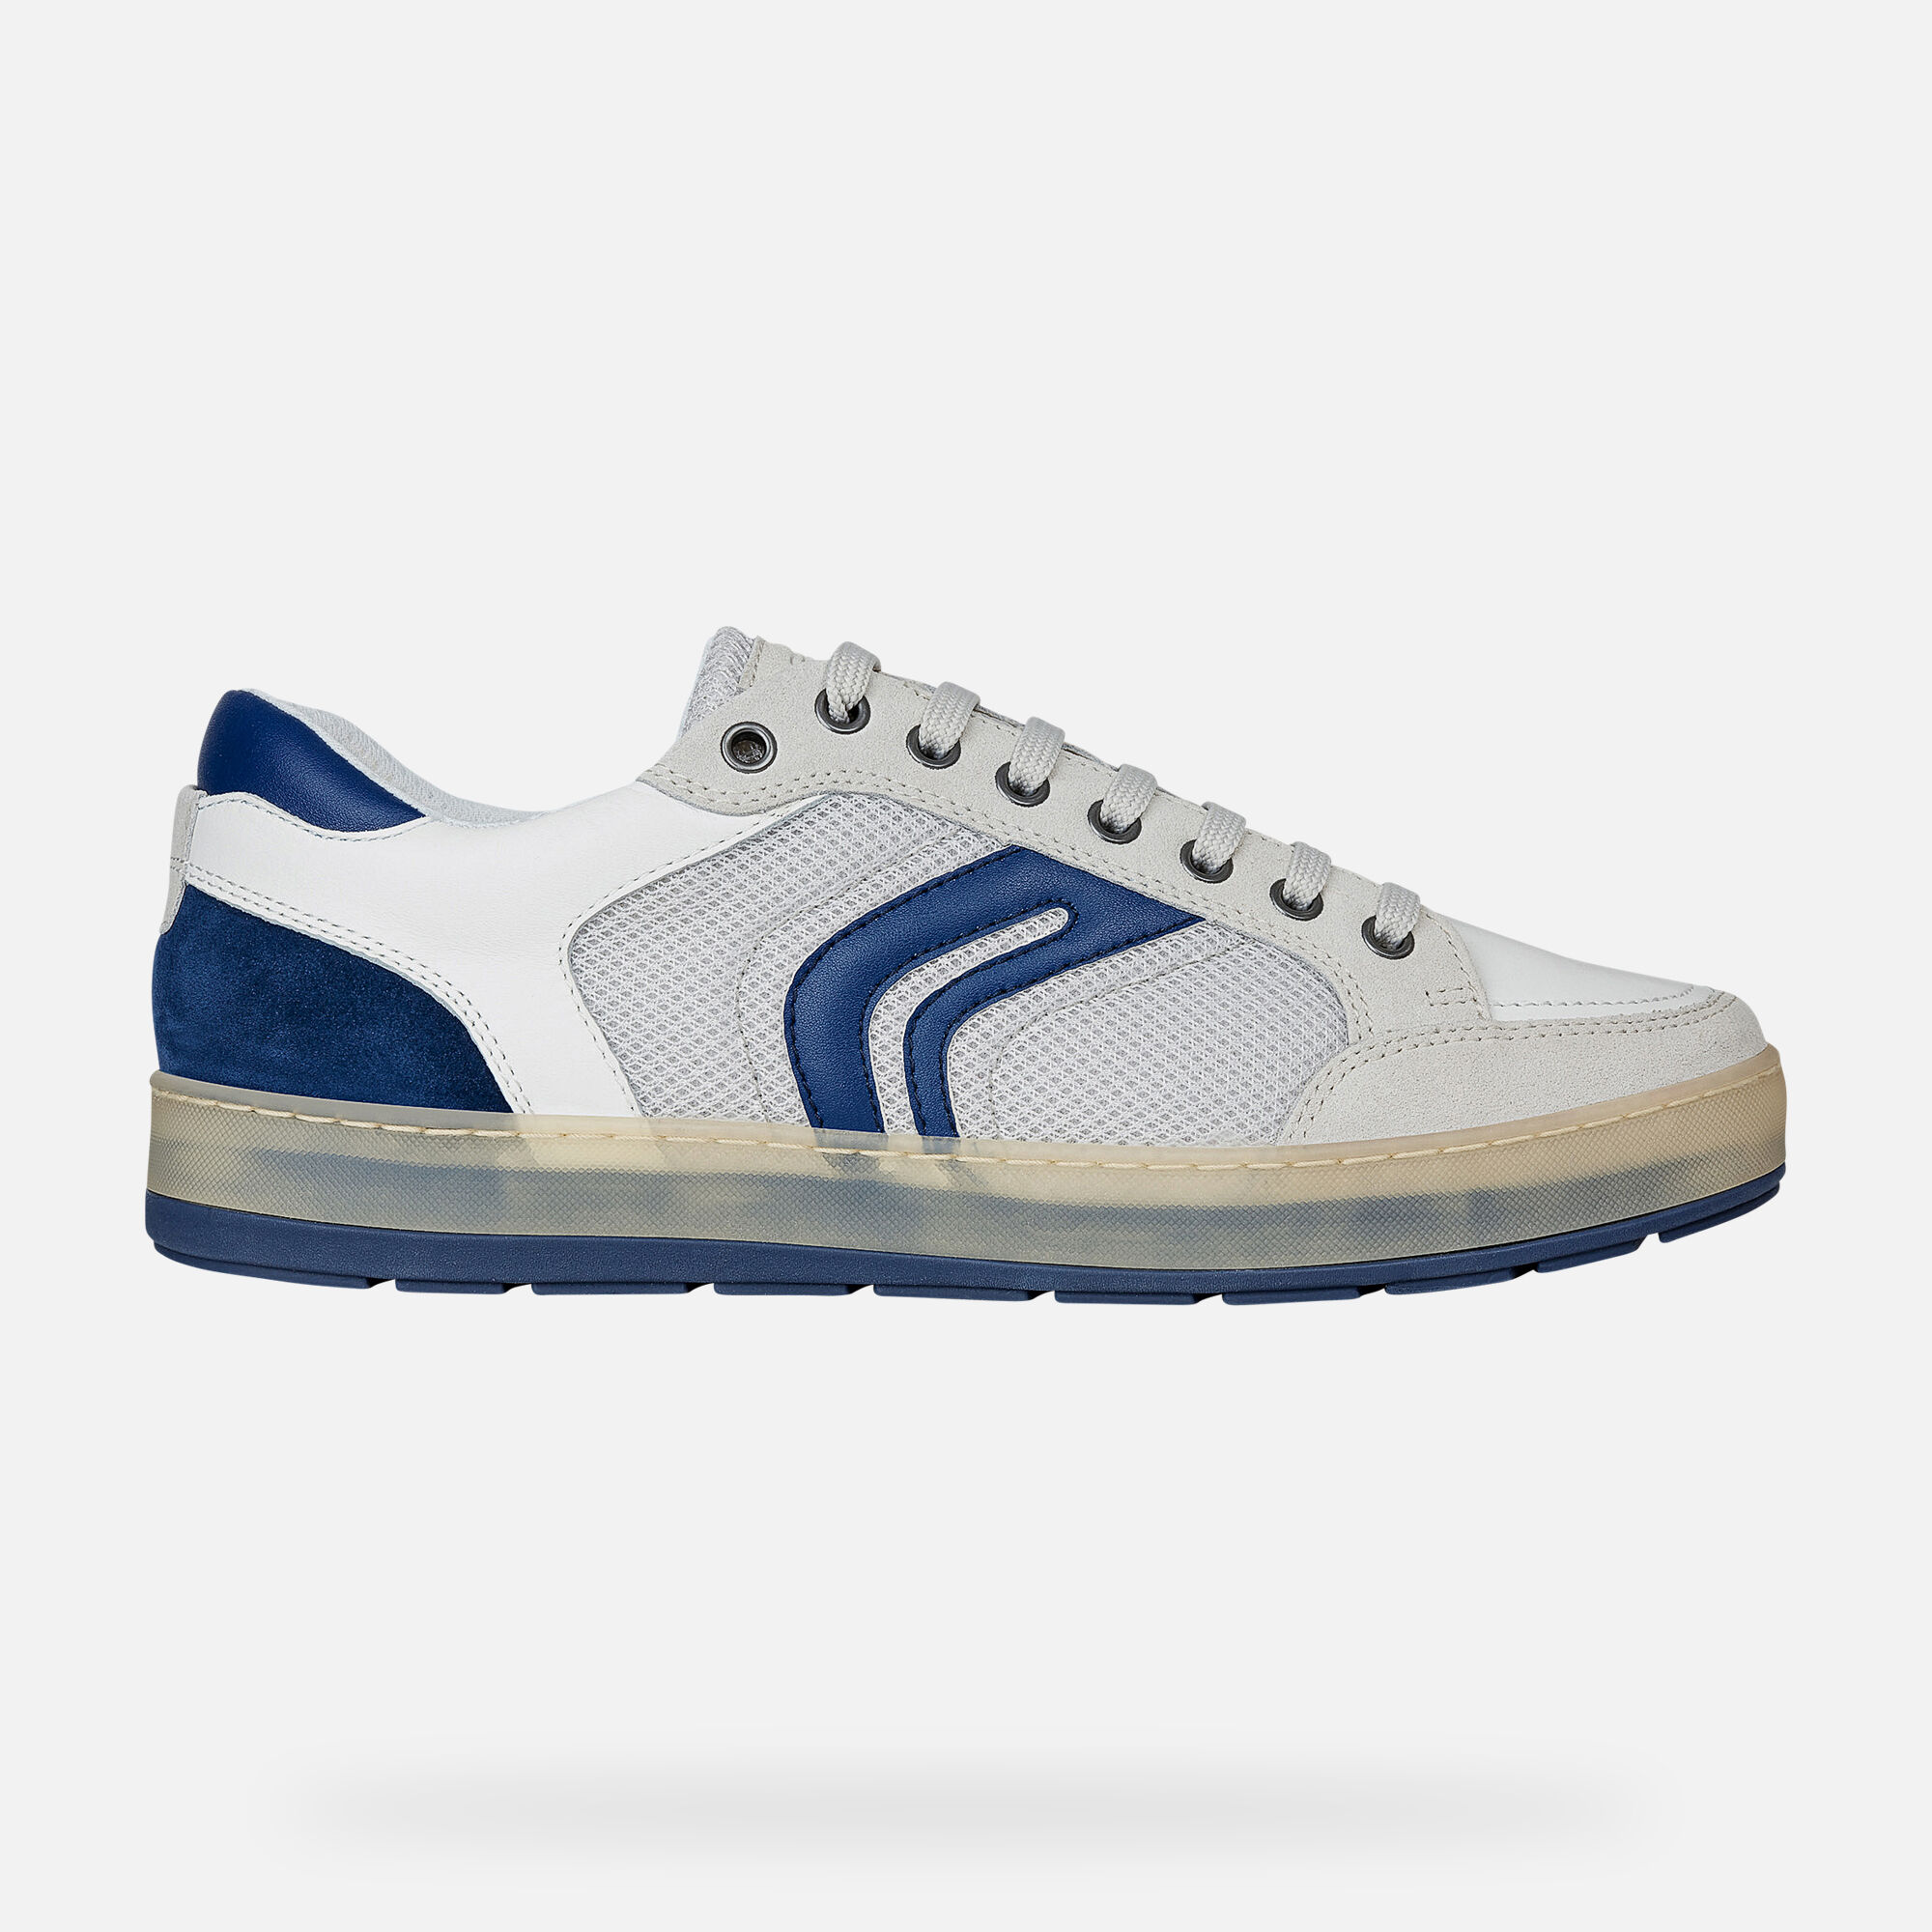 Geox U ARIAM: Papyrus and White Man Sneakers | Geox SS19